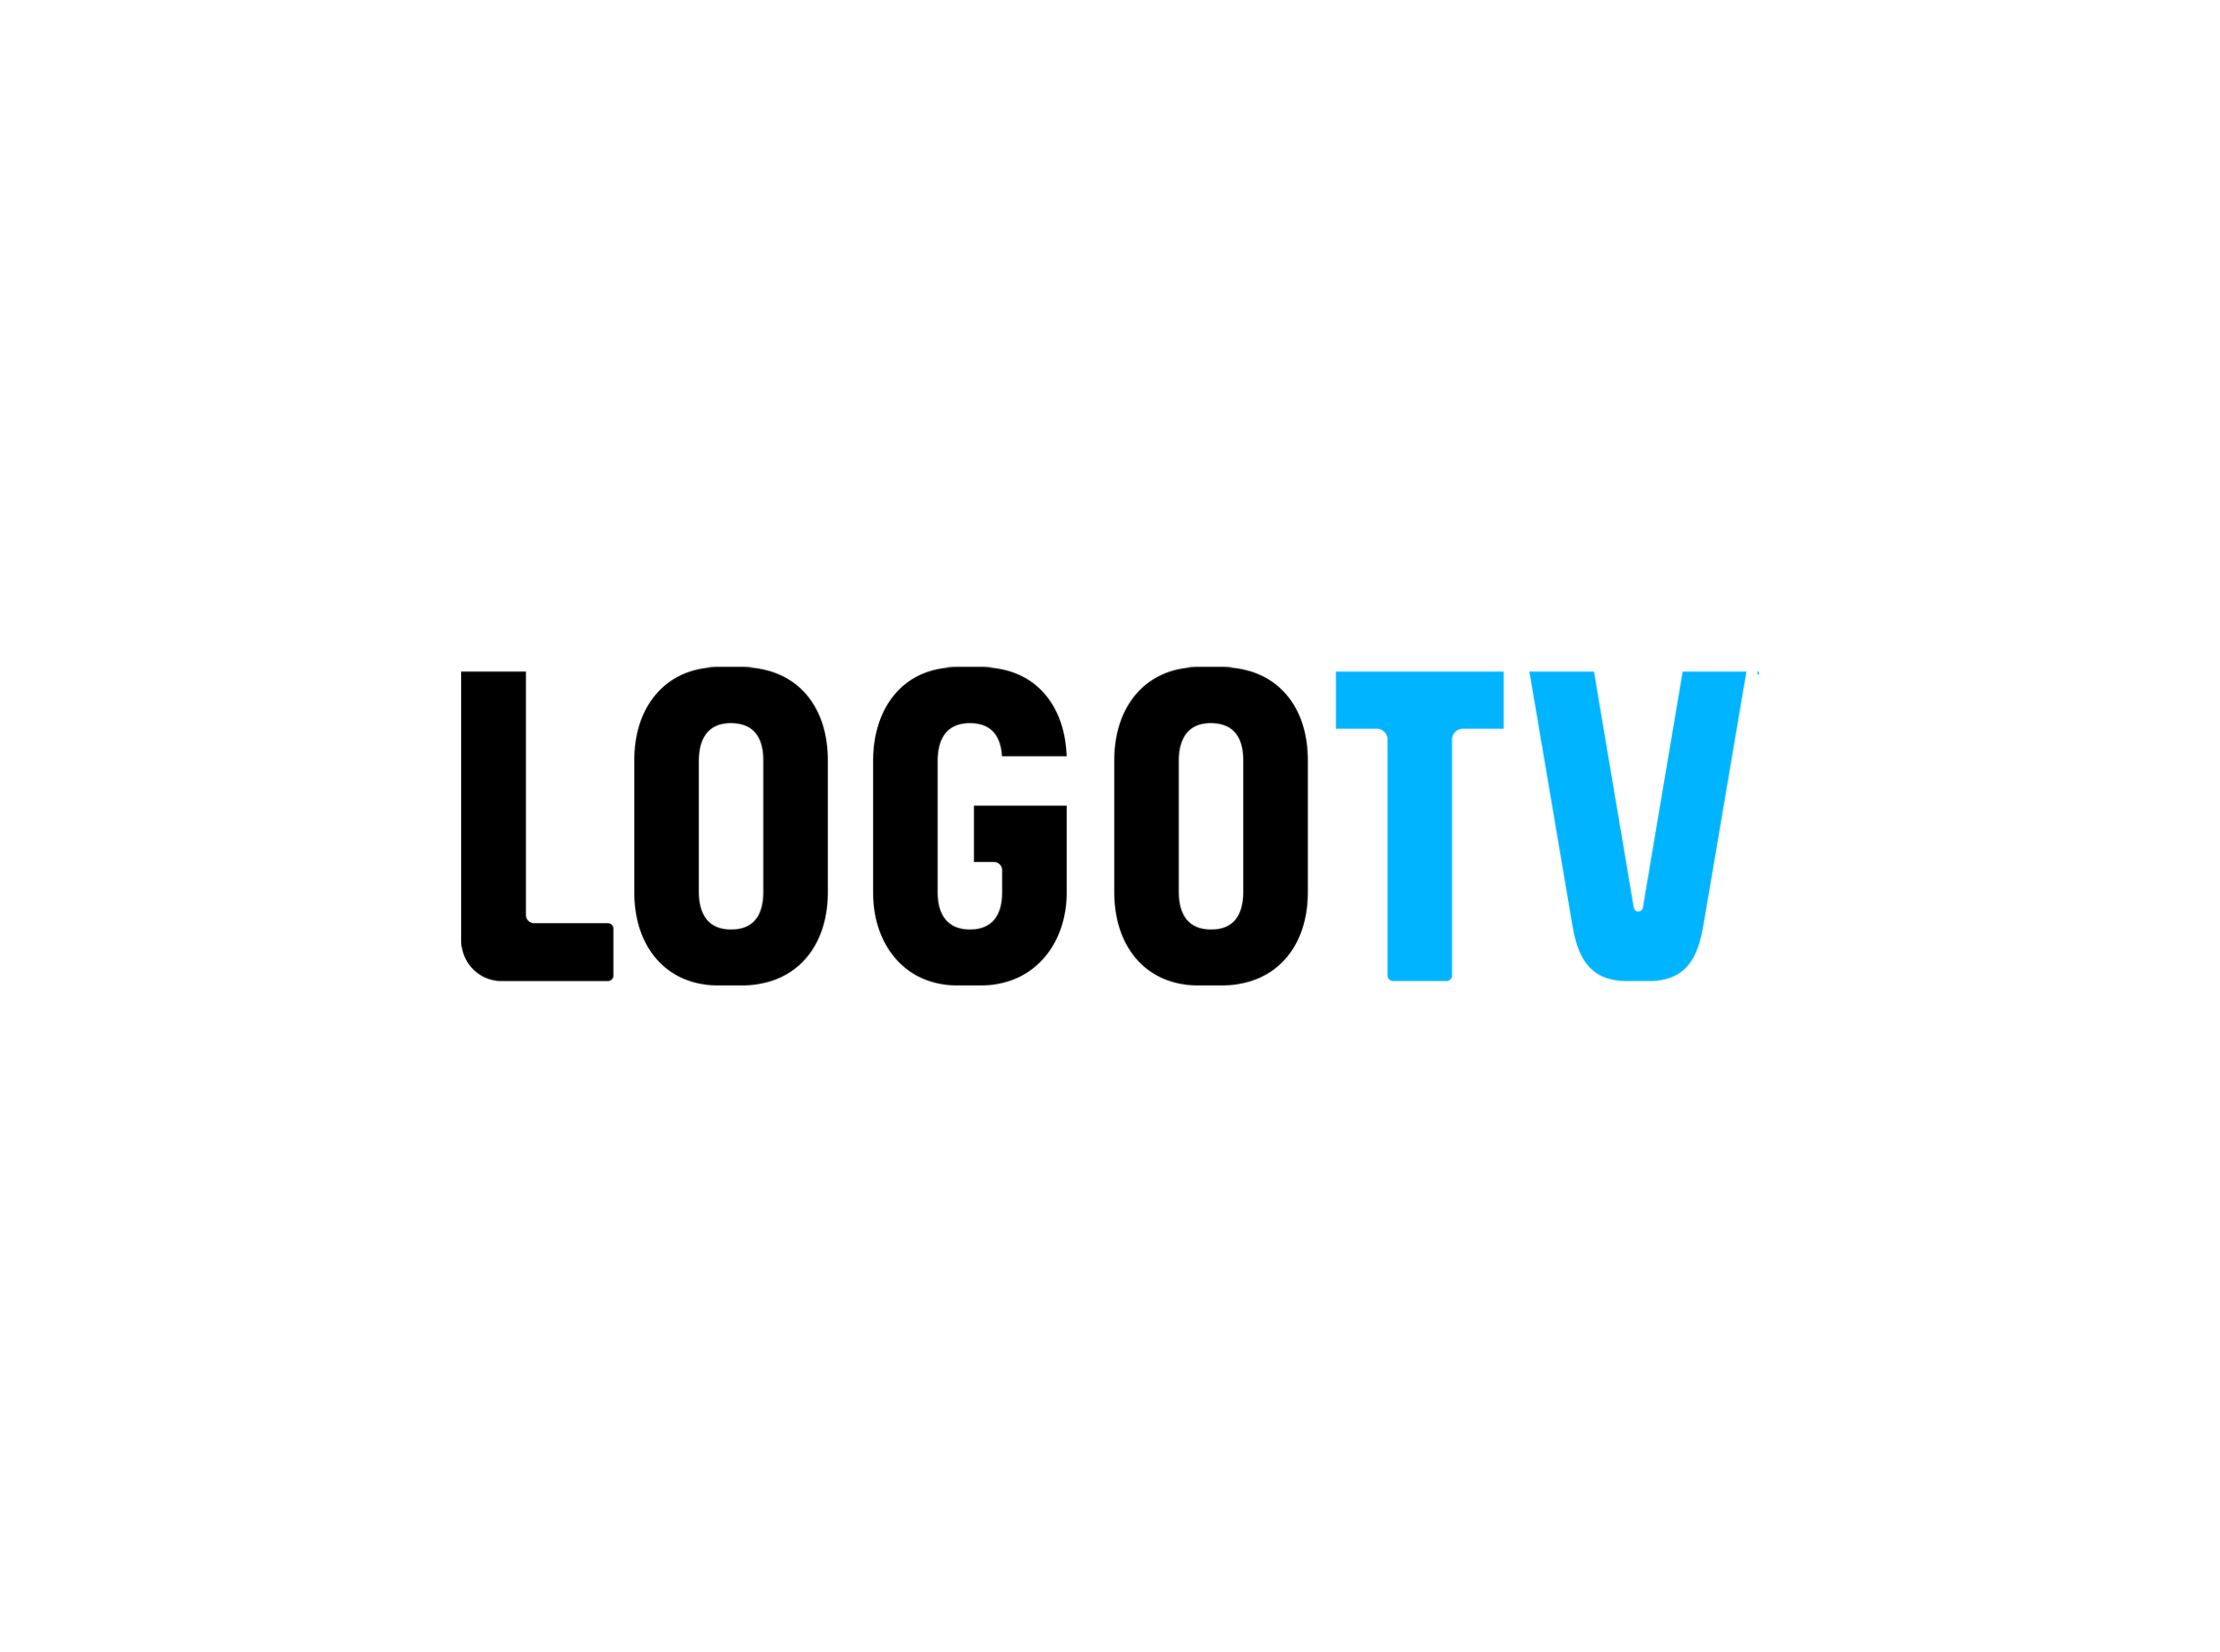 logo tv images reverse search